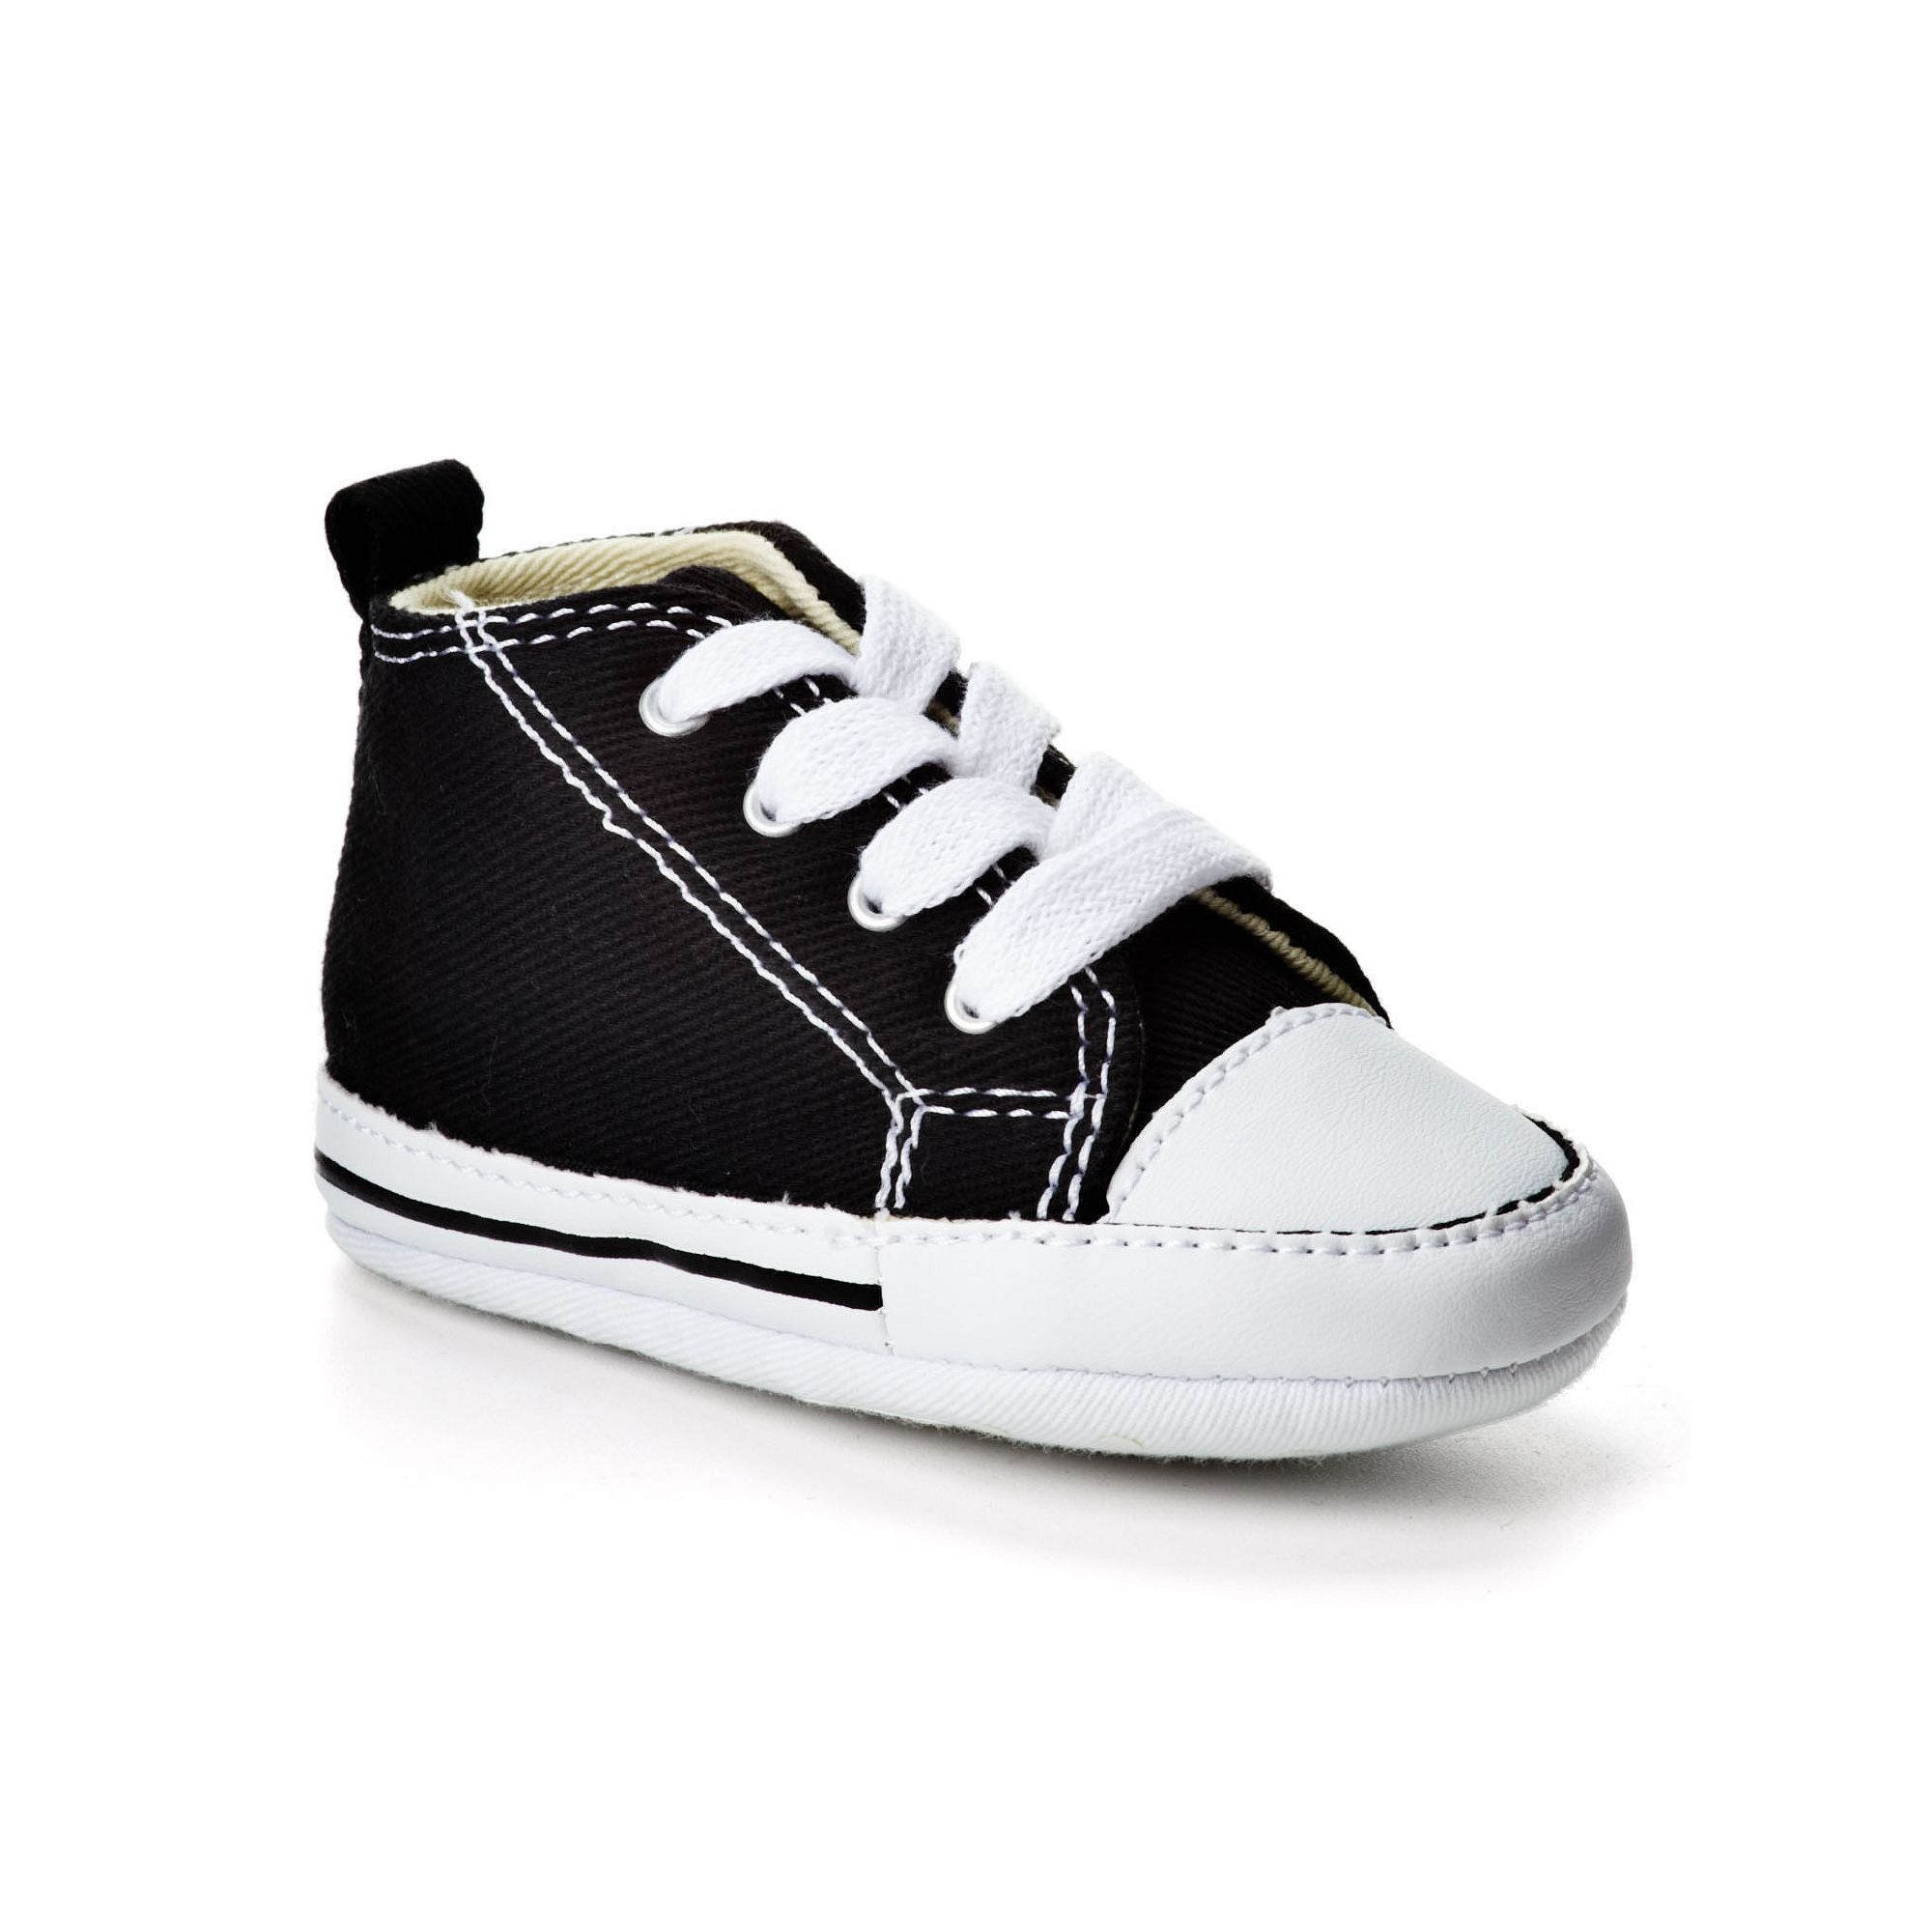 e1fec8e624c6af Baby Converse First Star Crib Shoes